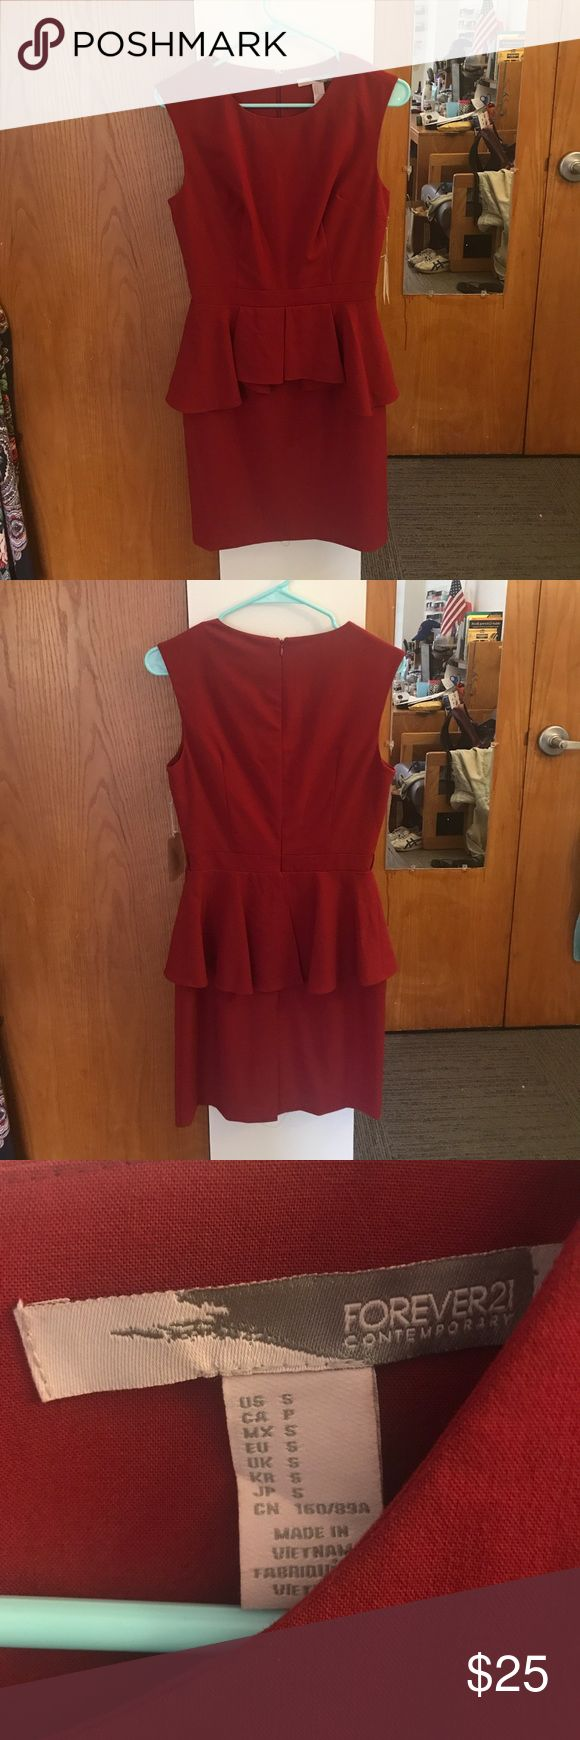 NWT Forever 21 Red Peplum Dress S brand new Forever 21 red peplum dress, tags still attached. Size Small. Perfect for work! Forever 21 Dresses